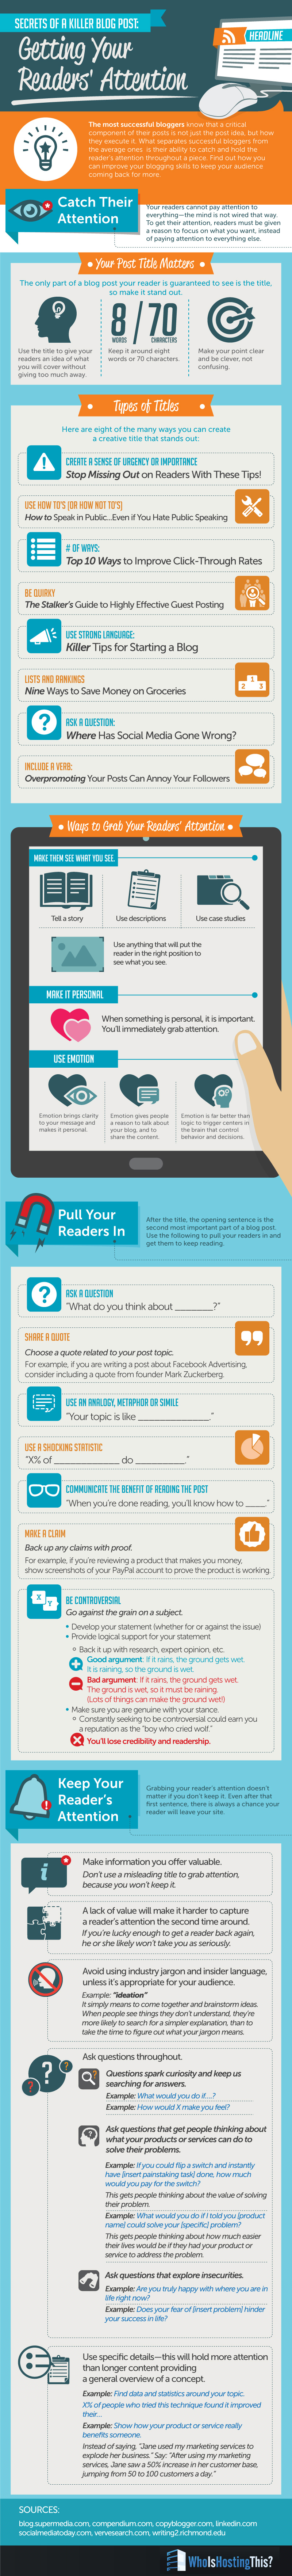 How-to-Write-a-Killer-Blog-Post-Infographic